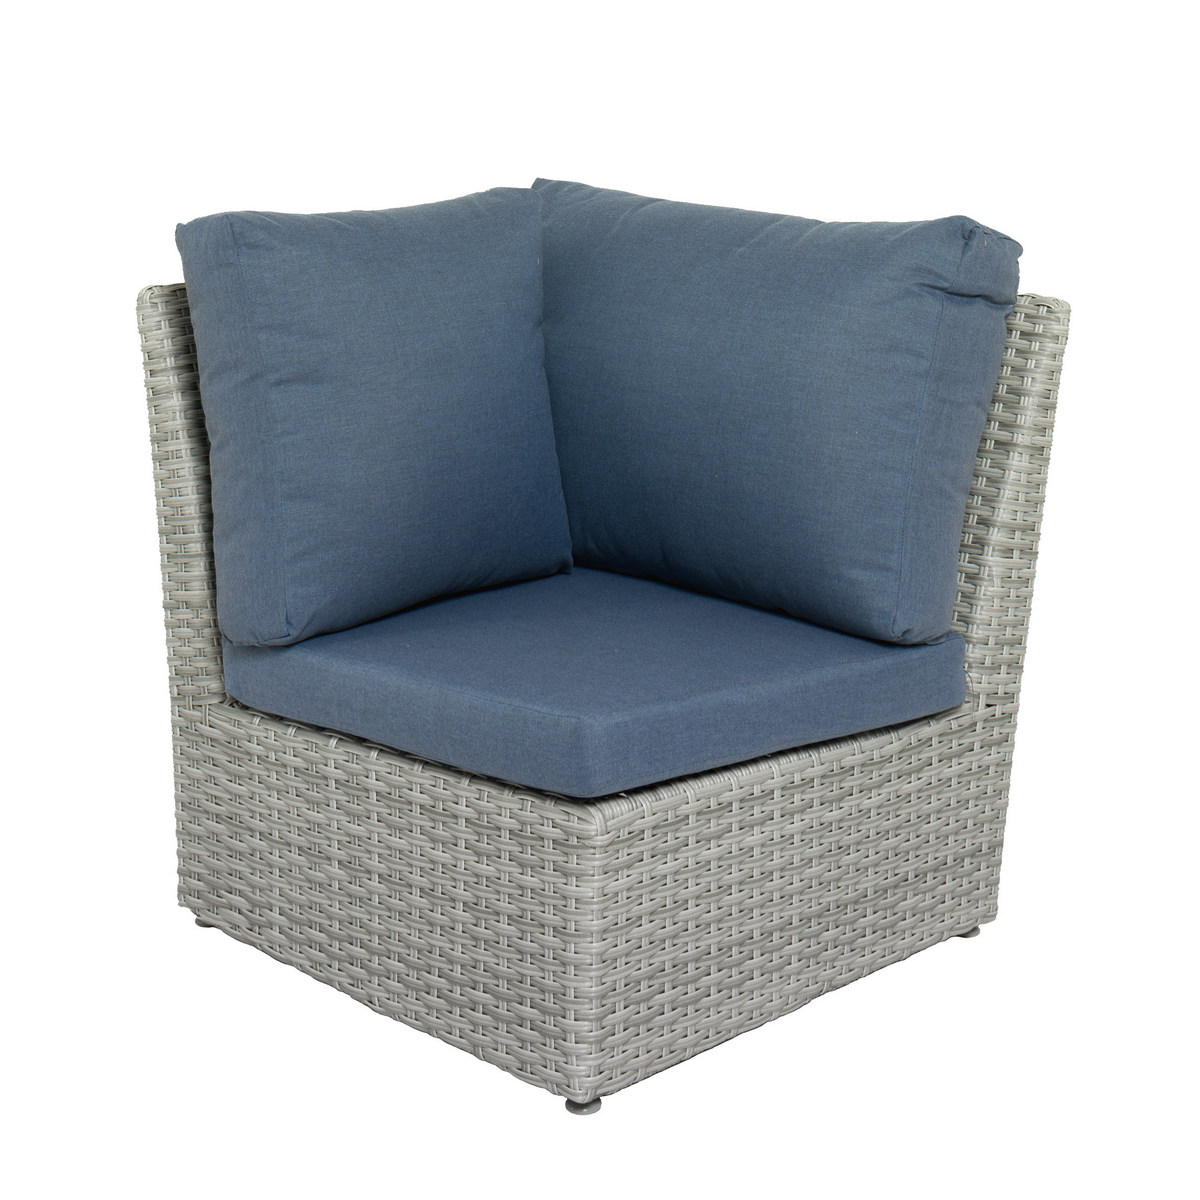 Corliving Weather Resistant Resin Wicker Corner Patio Chair